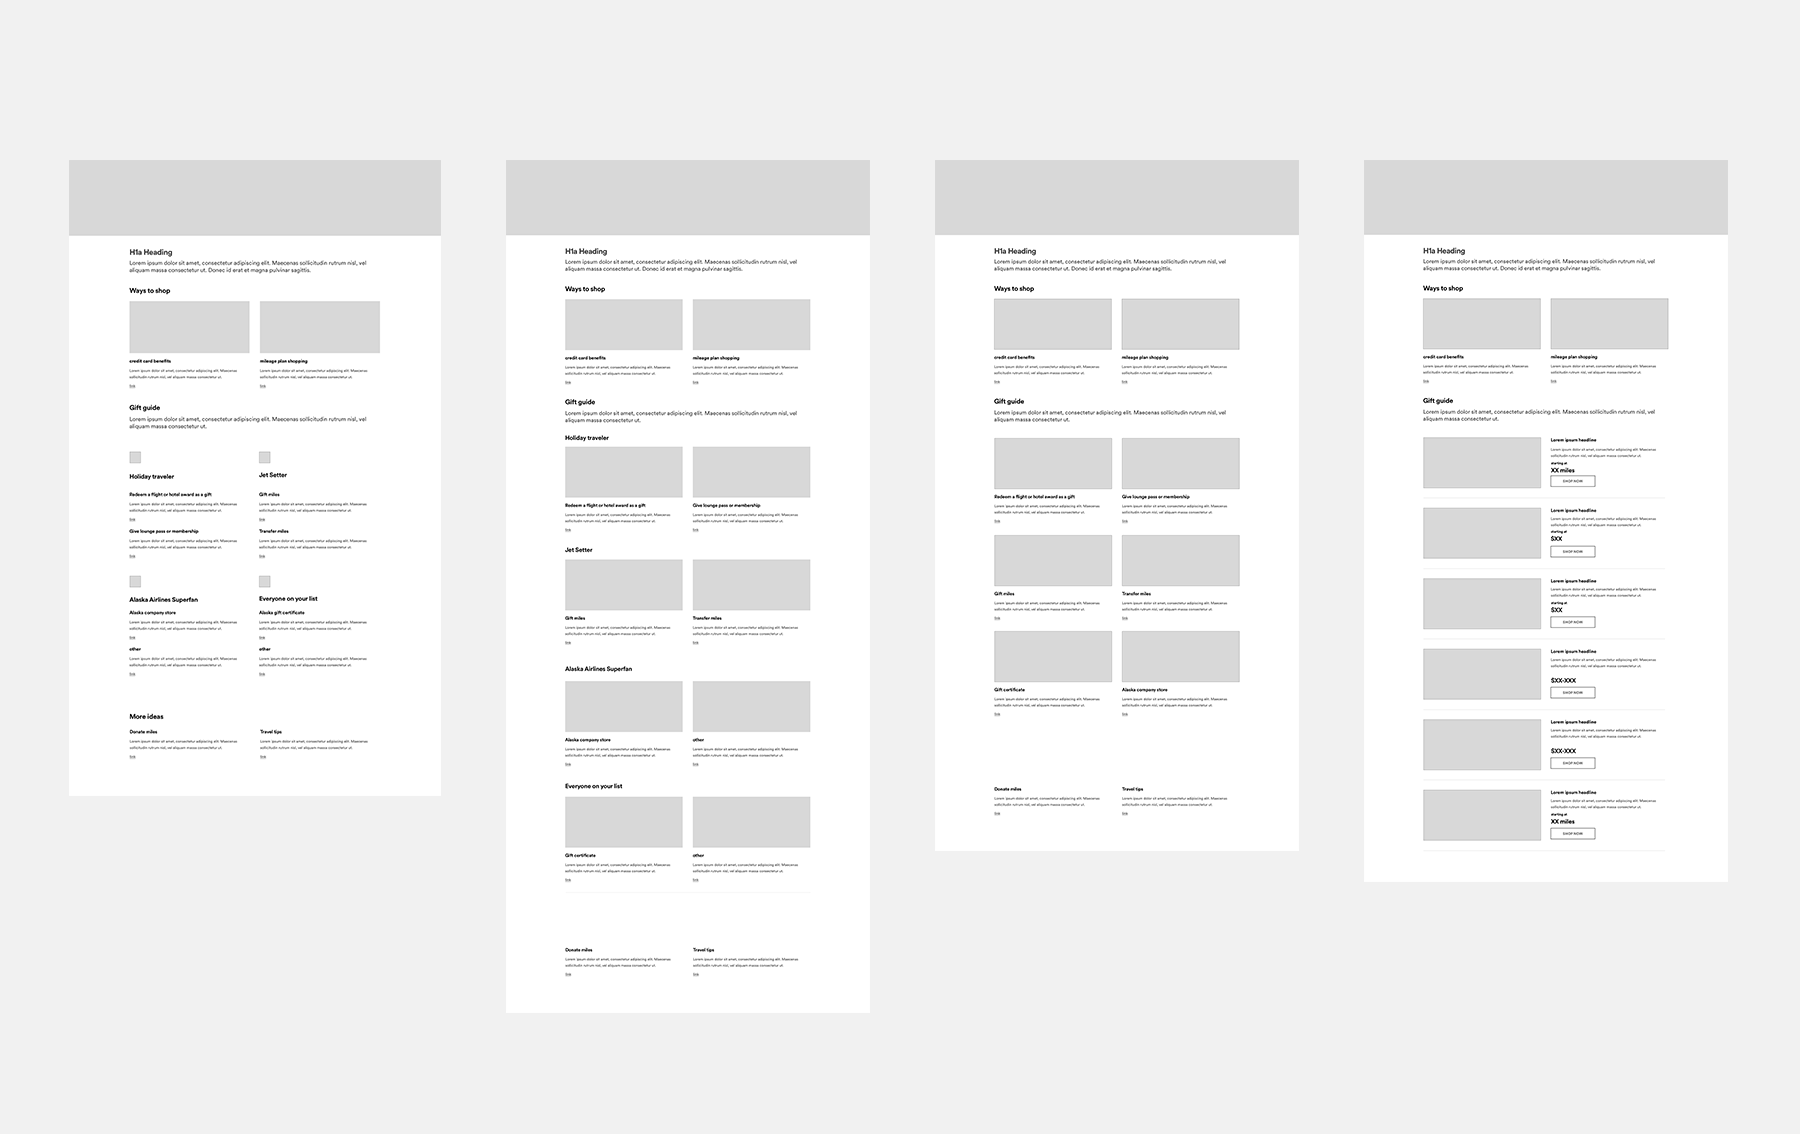 Wireframes exploring possible layouts for gift guide page